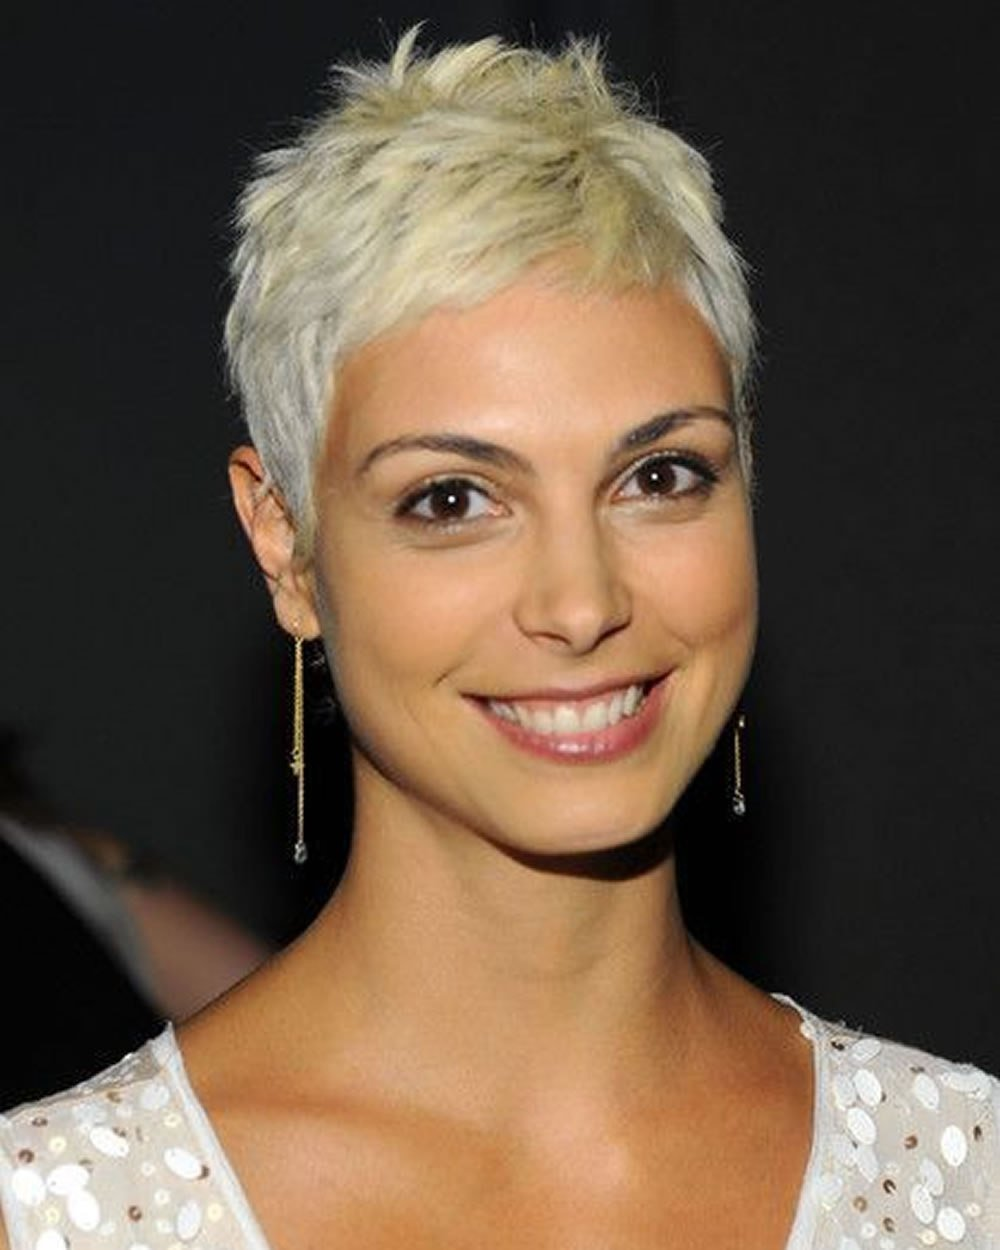 The Best Super Very Short Pixie Haircuts Hair Colors For 2018 2019 – Page 5 – Hairstyles Pictures